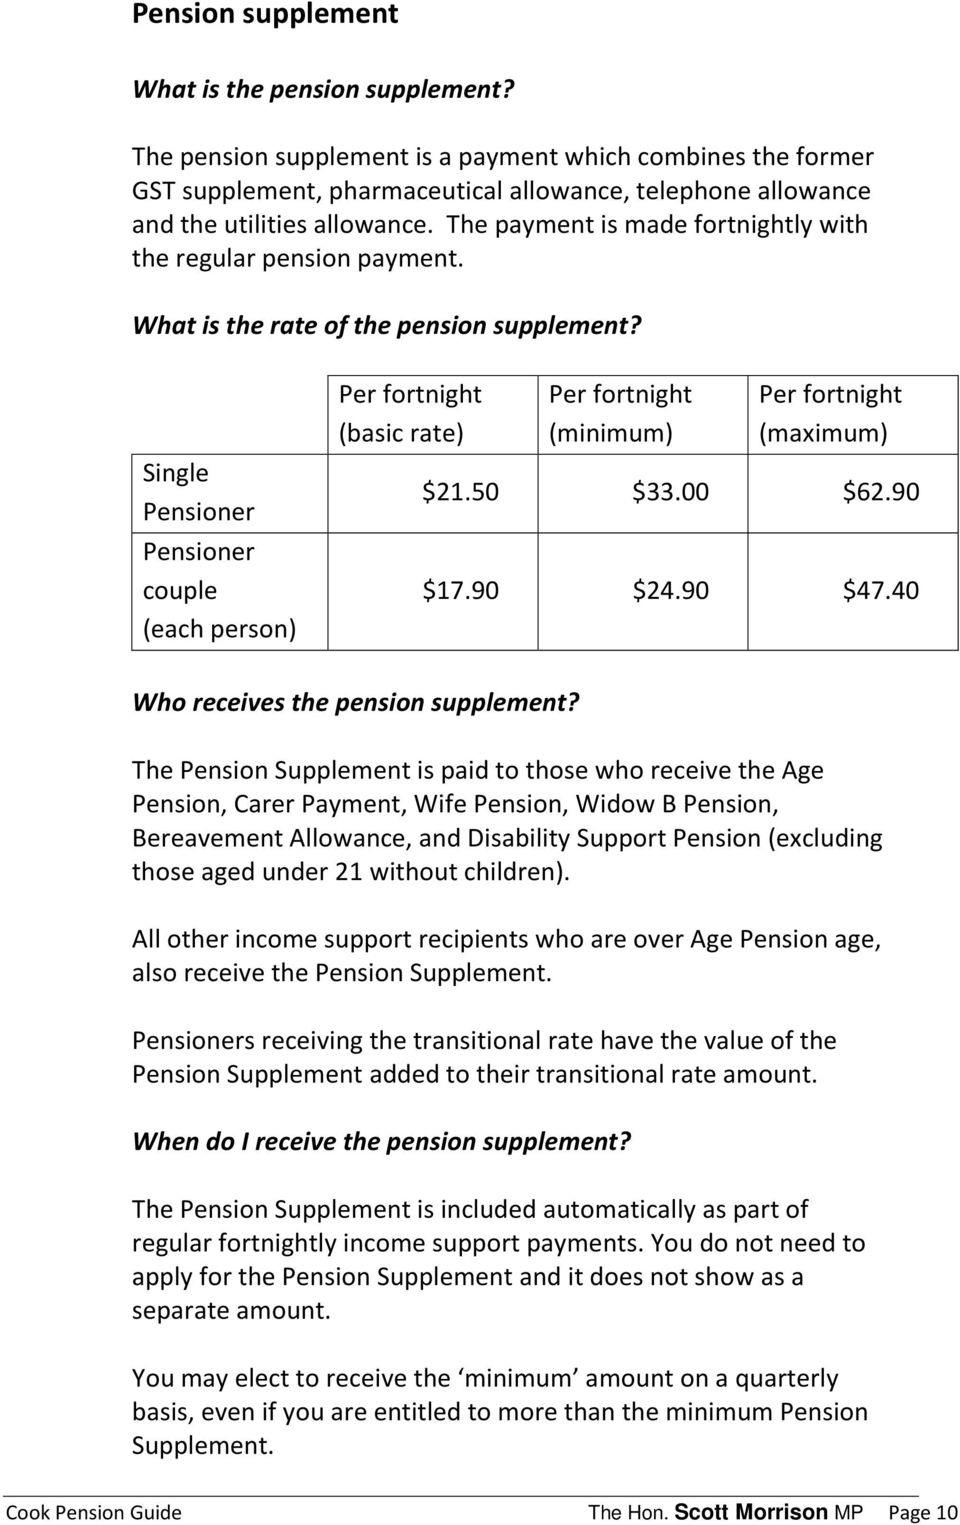 The payment is made fortnightly with the regular pension payment. What is the rate of the pension supplement?